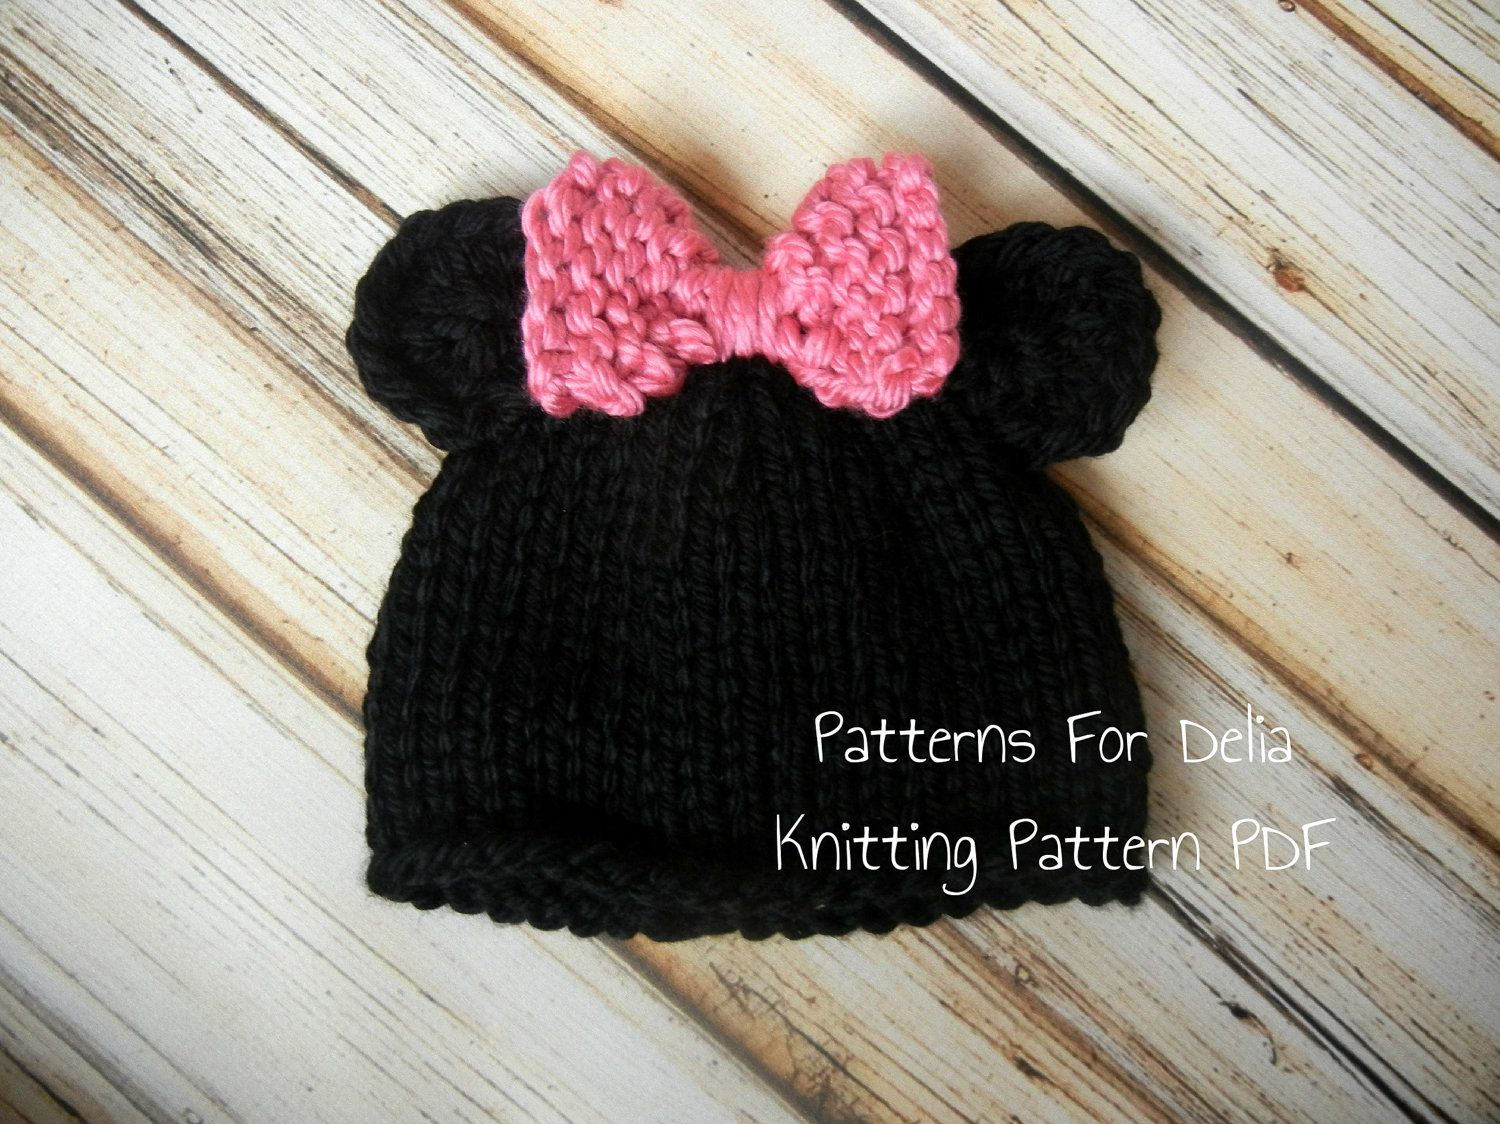 217928cf7a4ca3 Minnie Mickey Mouse Hat KNITTING PATTERN easy beginner teddy bear baby  infant toddler child photography prop beanie. $3.95, via Etsy.